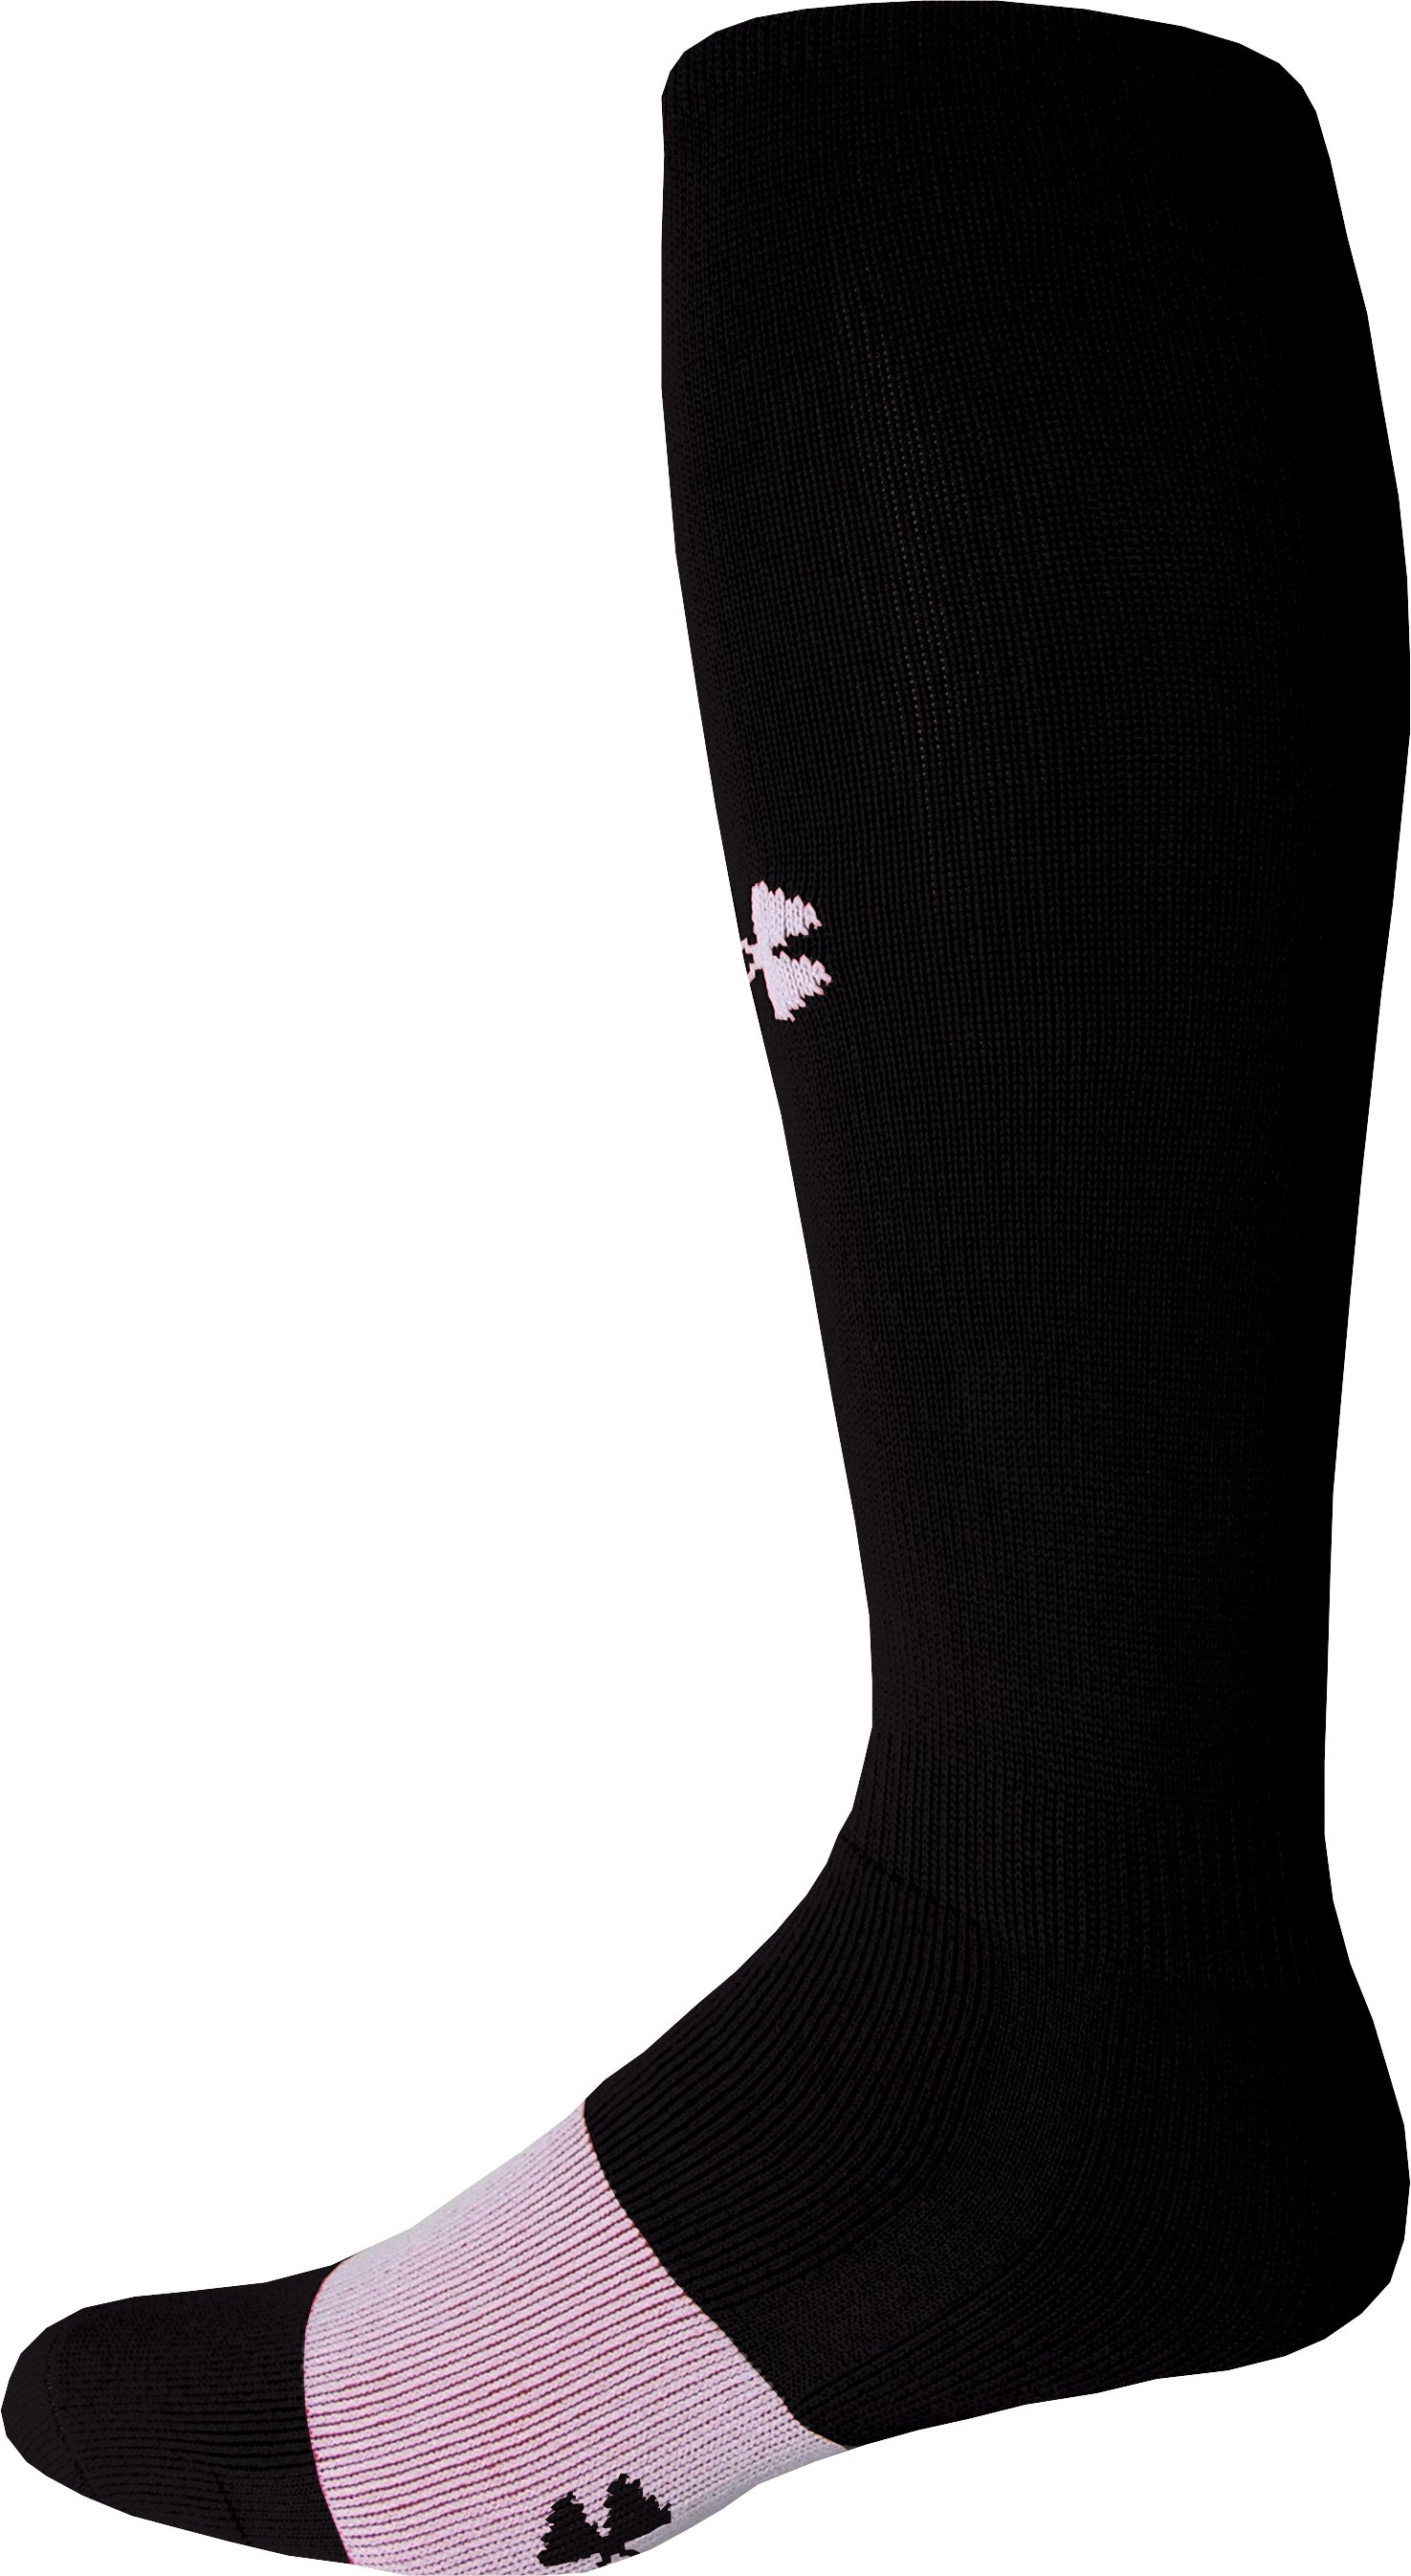 Men's Football Sock, Black